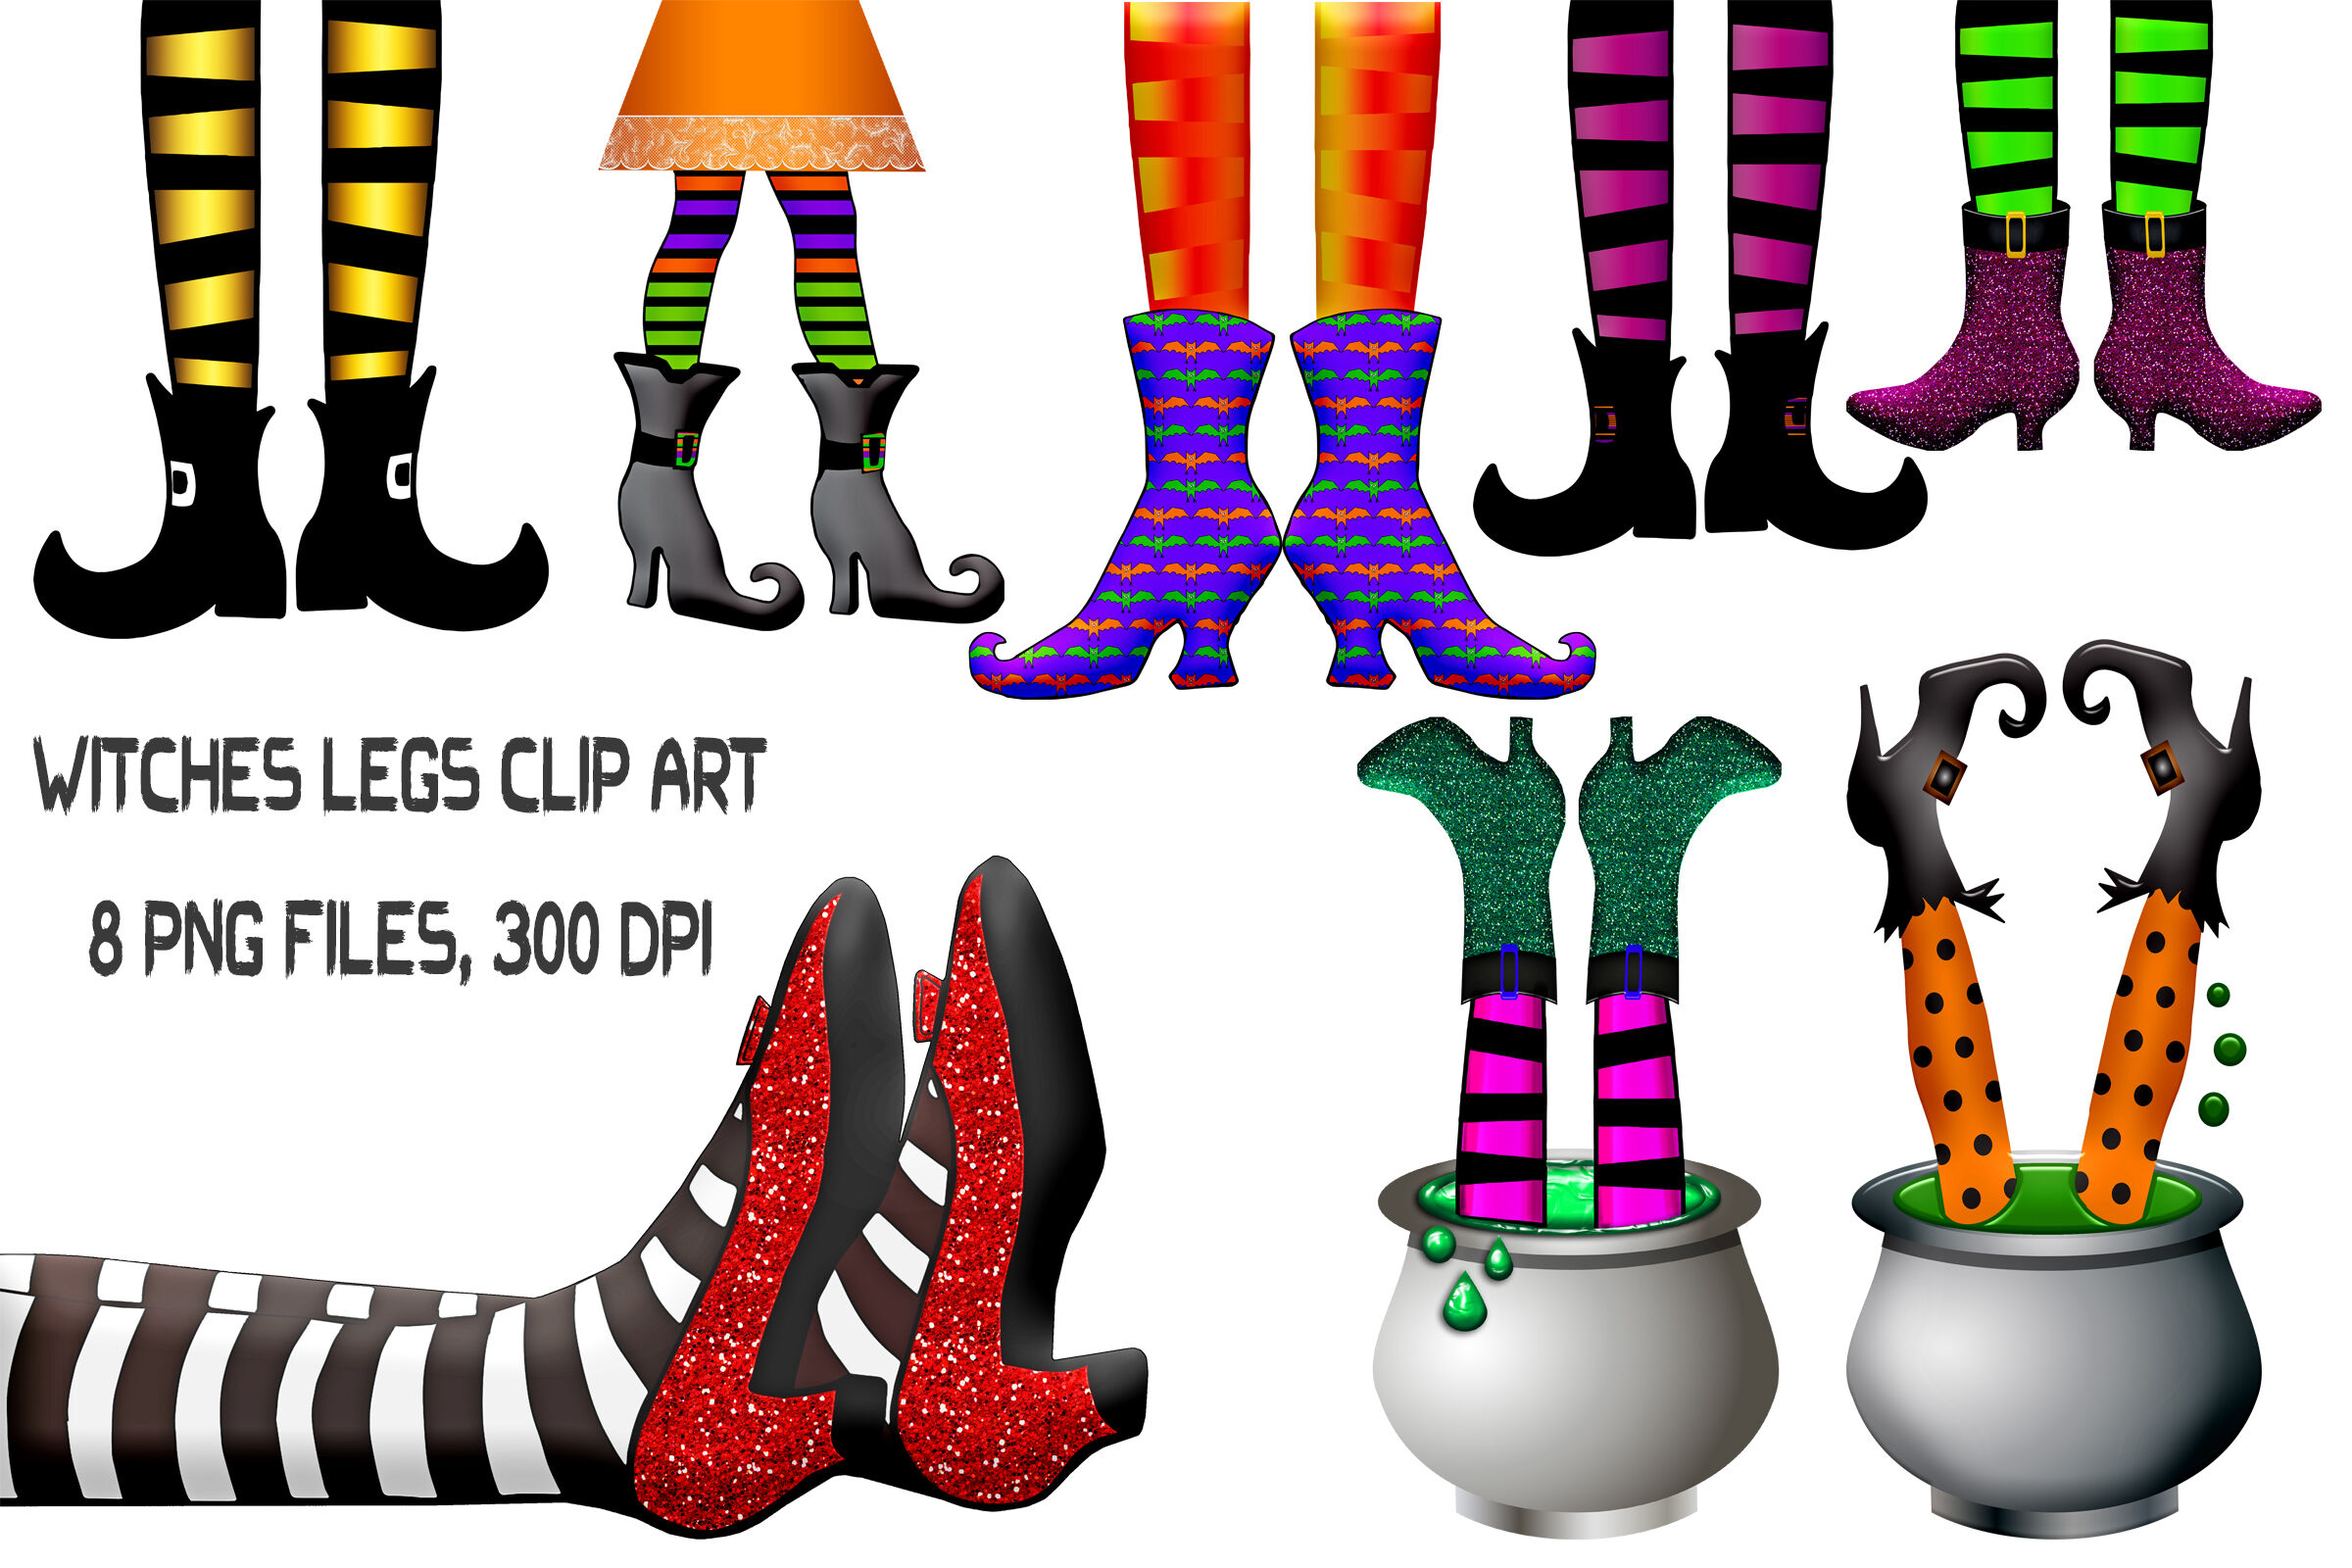 Witches Legs Clip Art By Me and Ameliè.